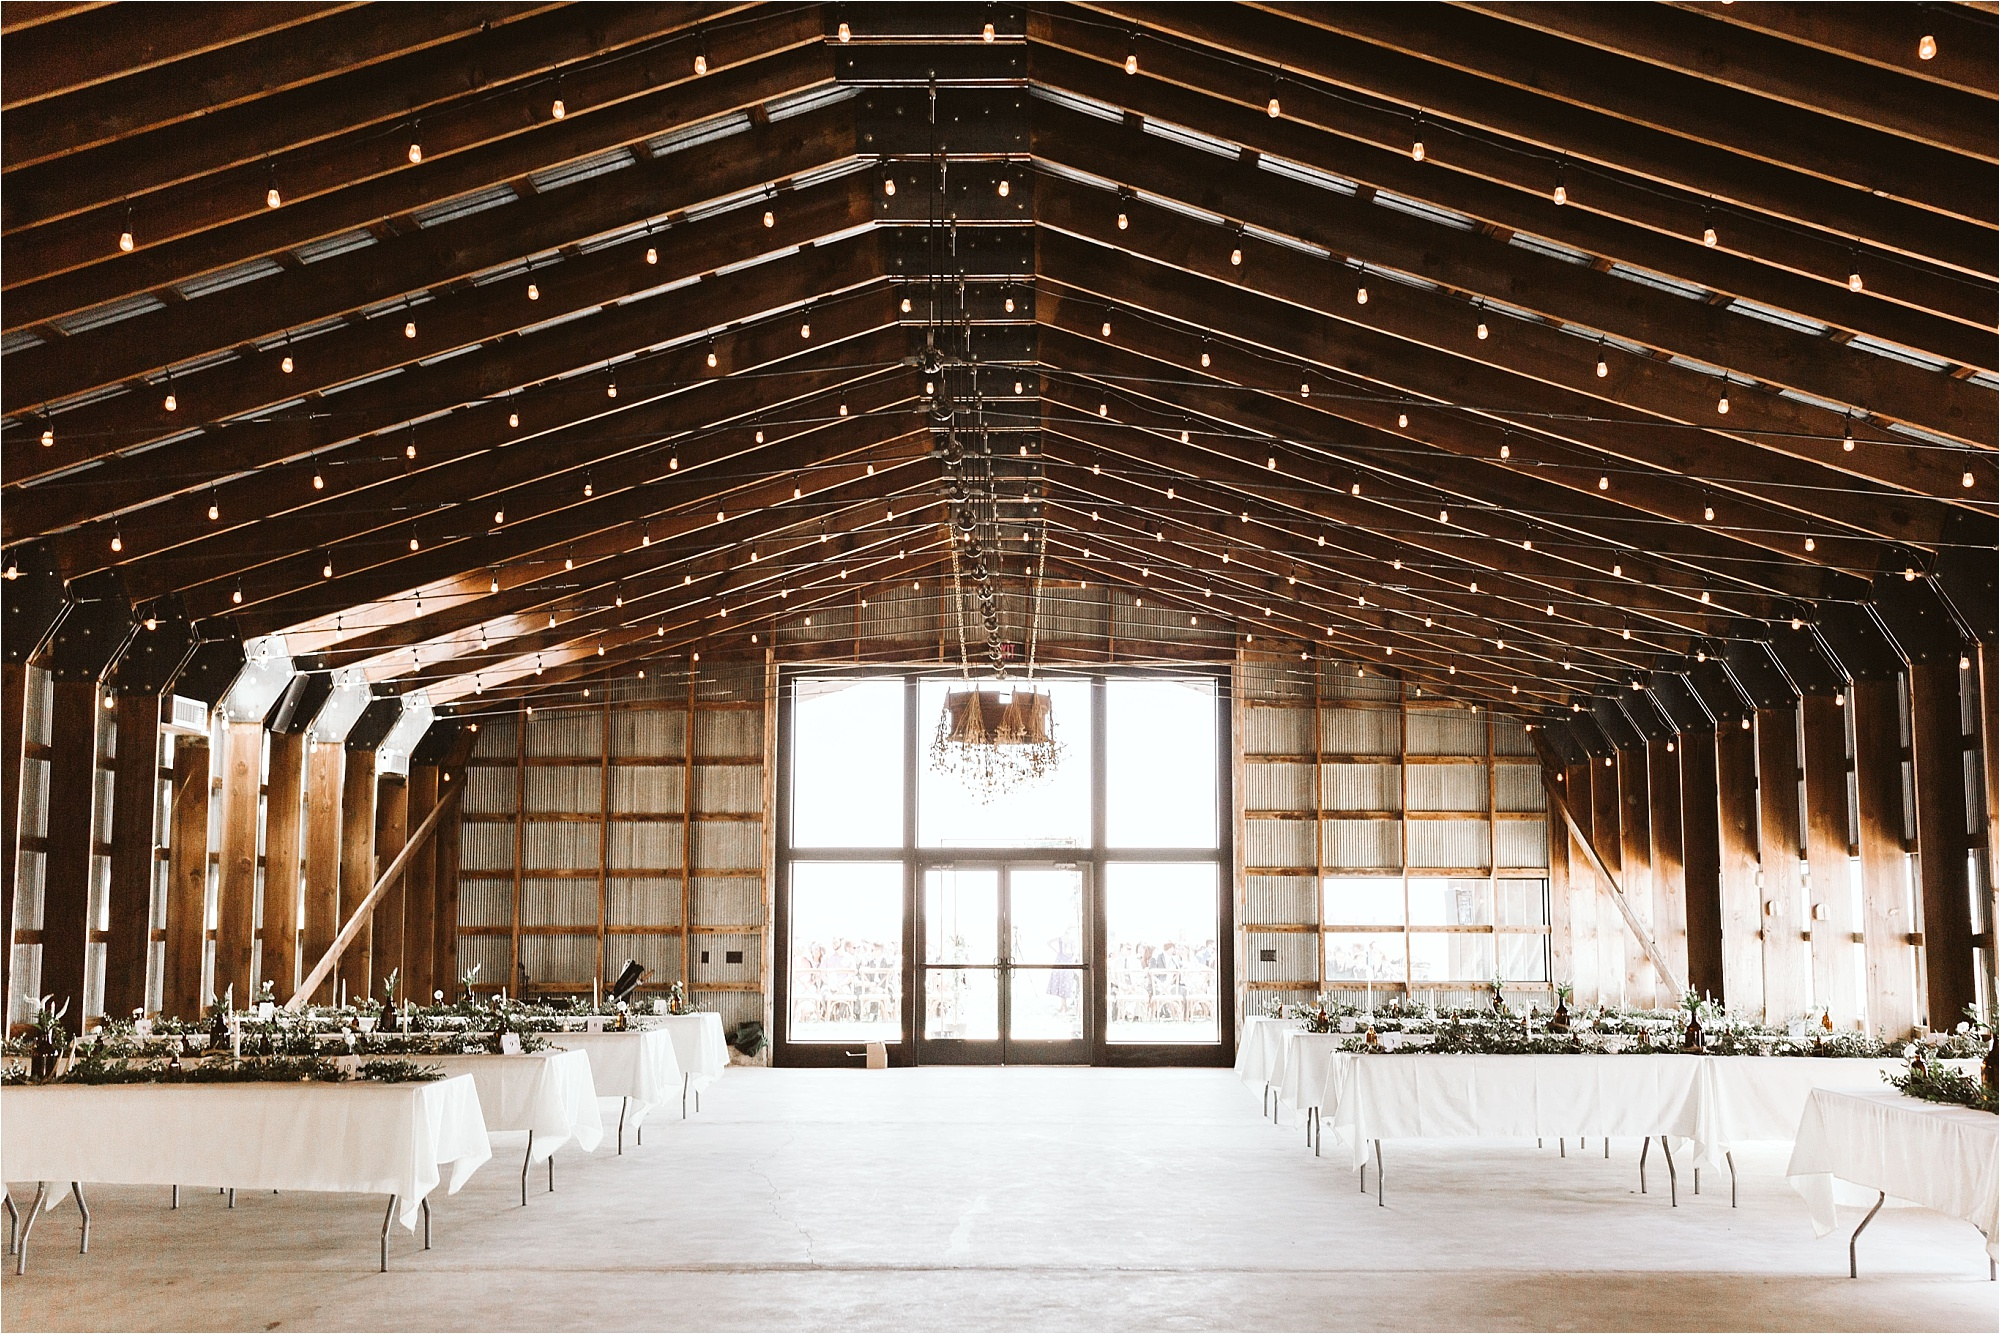 Champaign Illinois Barn Wedding_0095.jpg